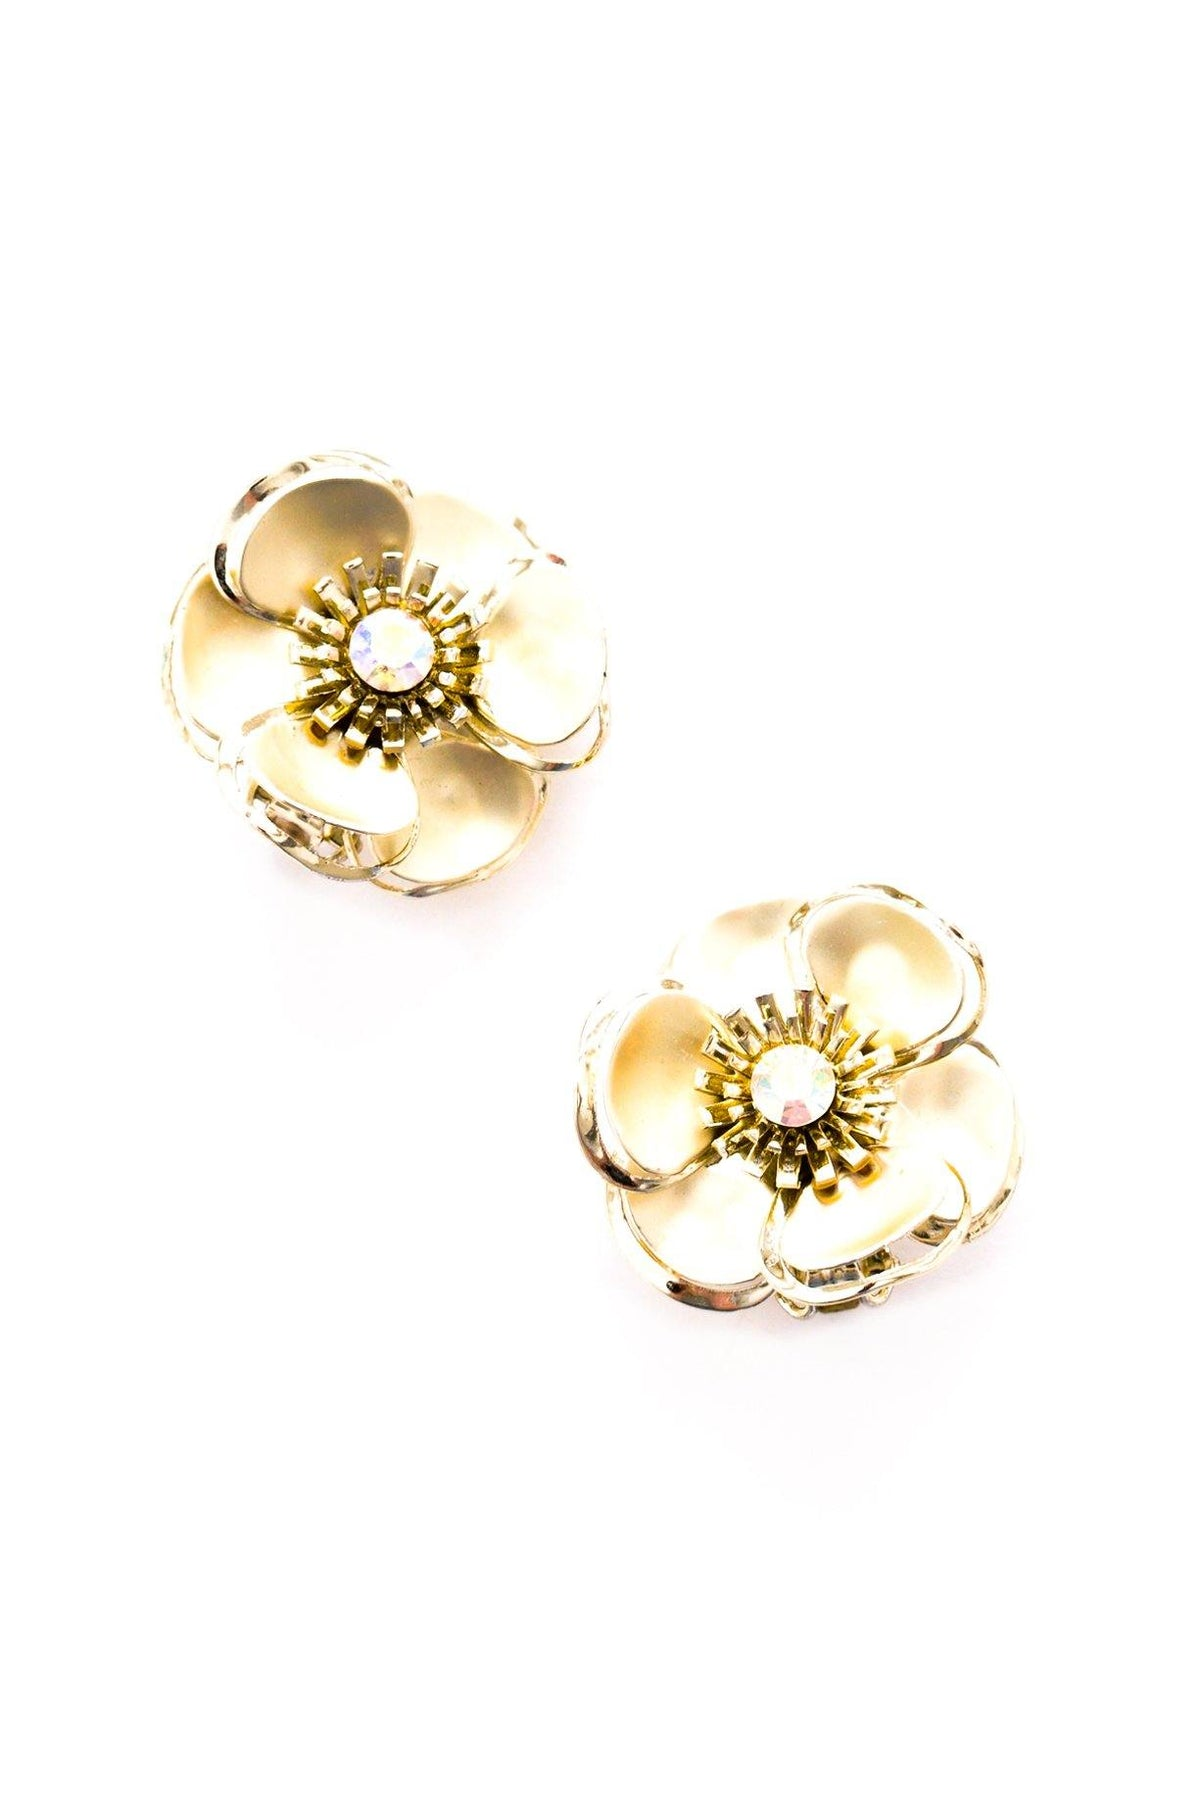 Vintage floral earrings from Sweet & Spark.